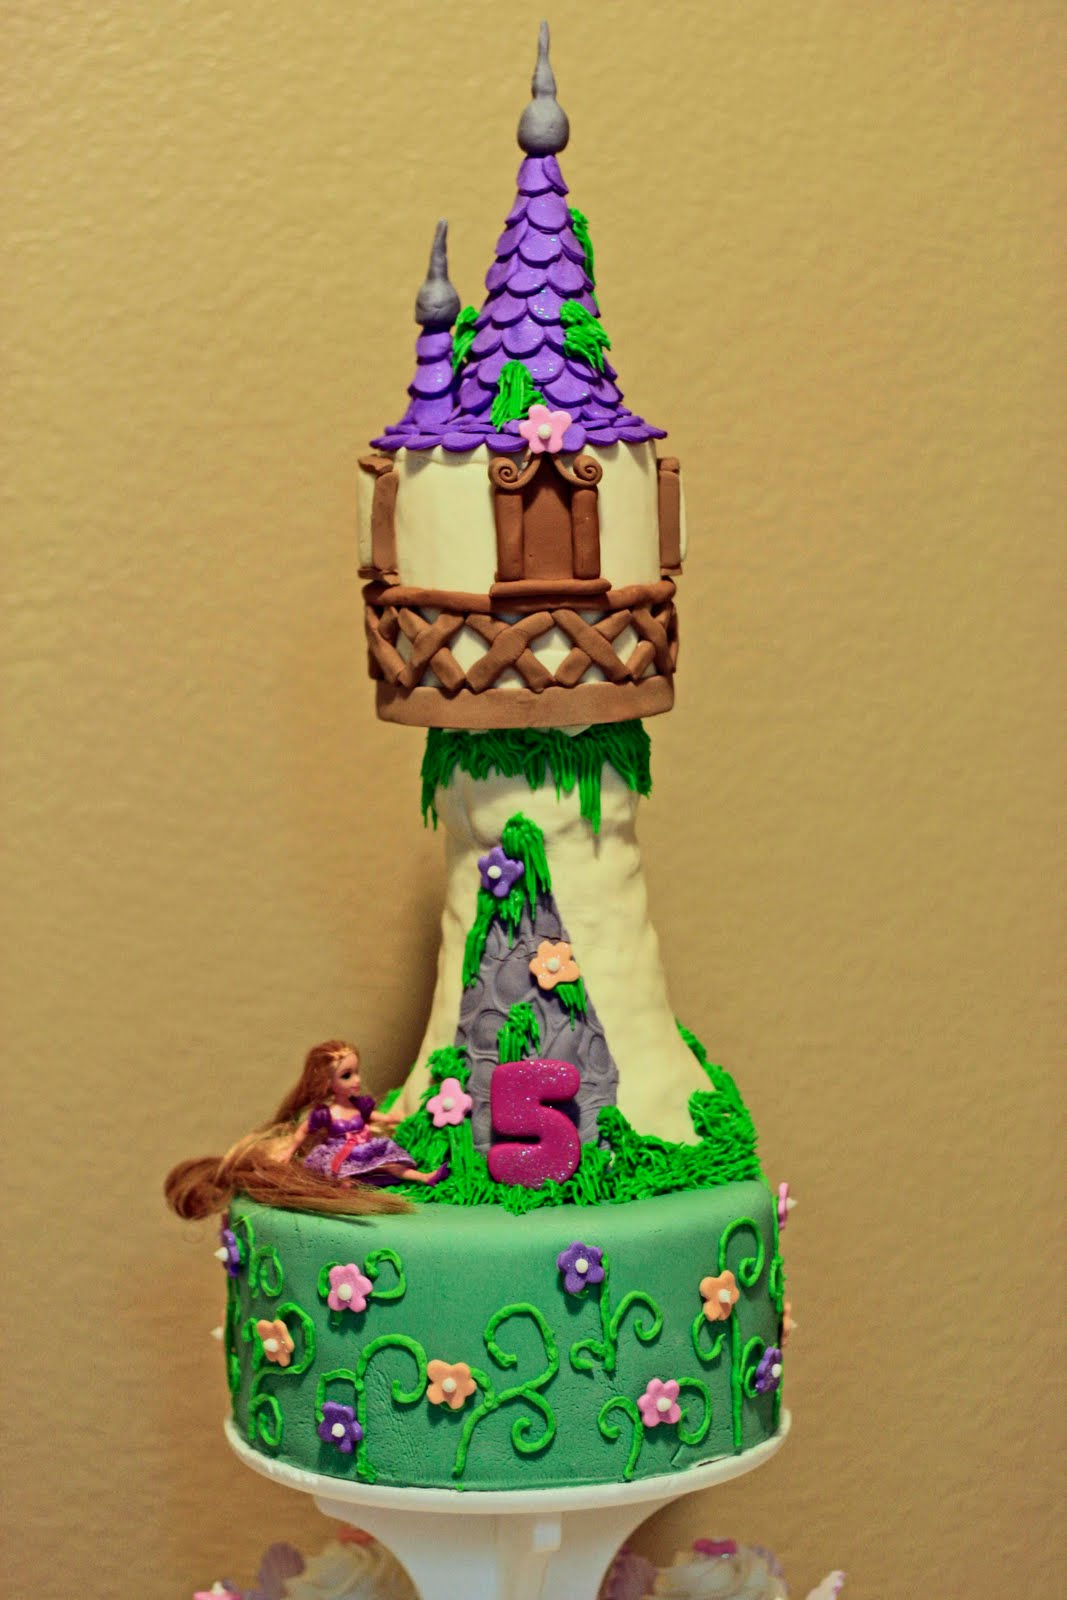 Forged in Cake: Tangled Birthday Cake